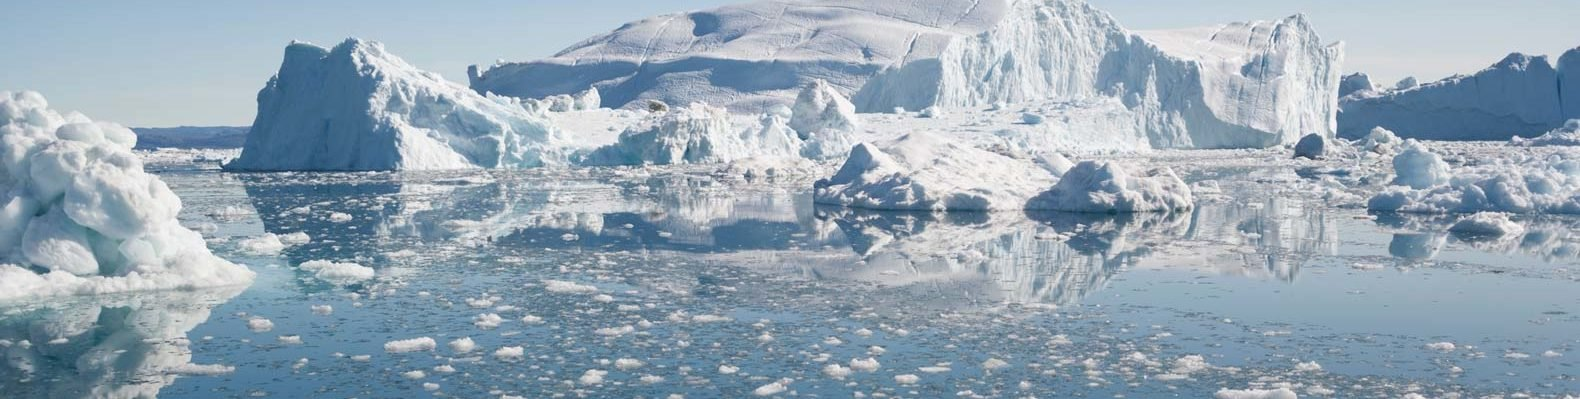 An iceberg and ice floes in the Arctic sea